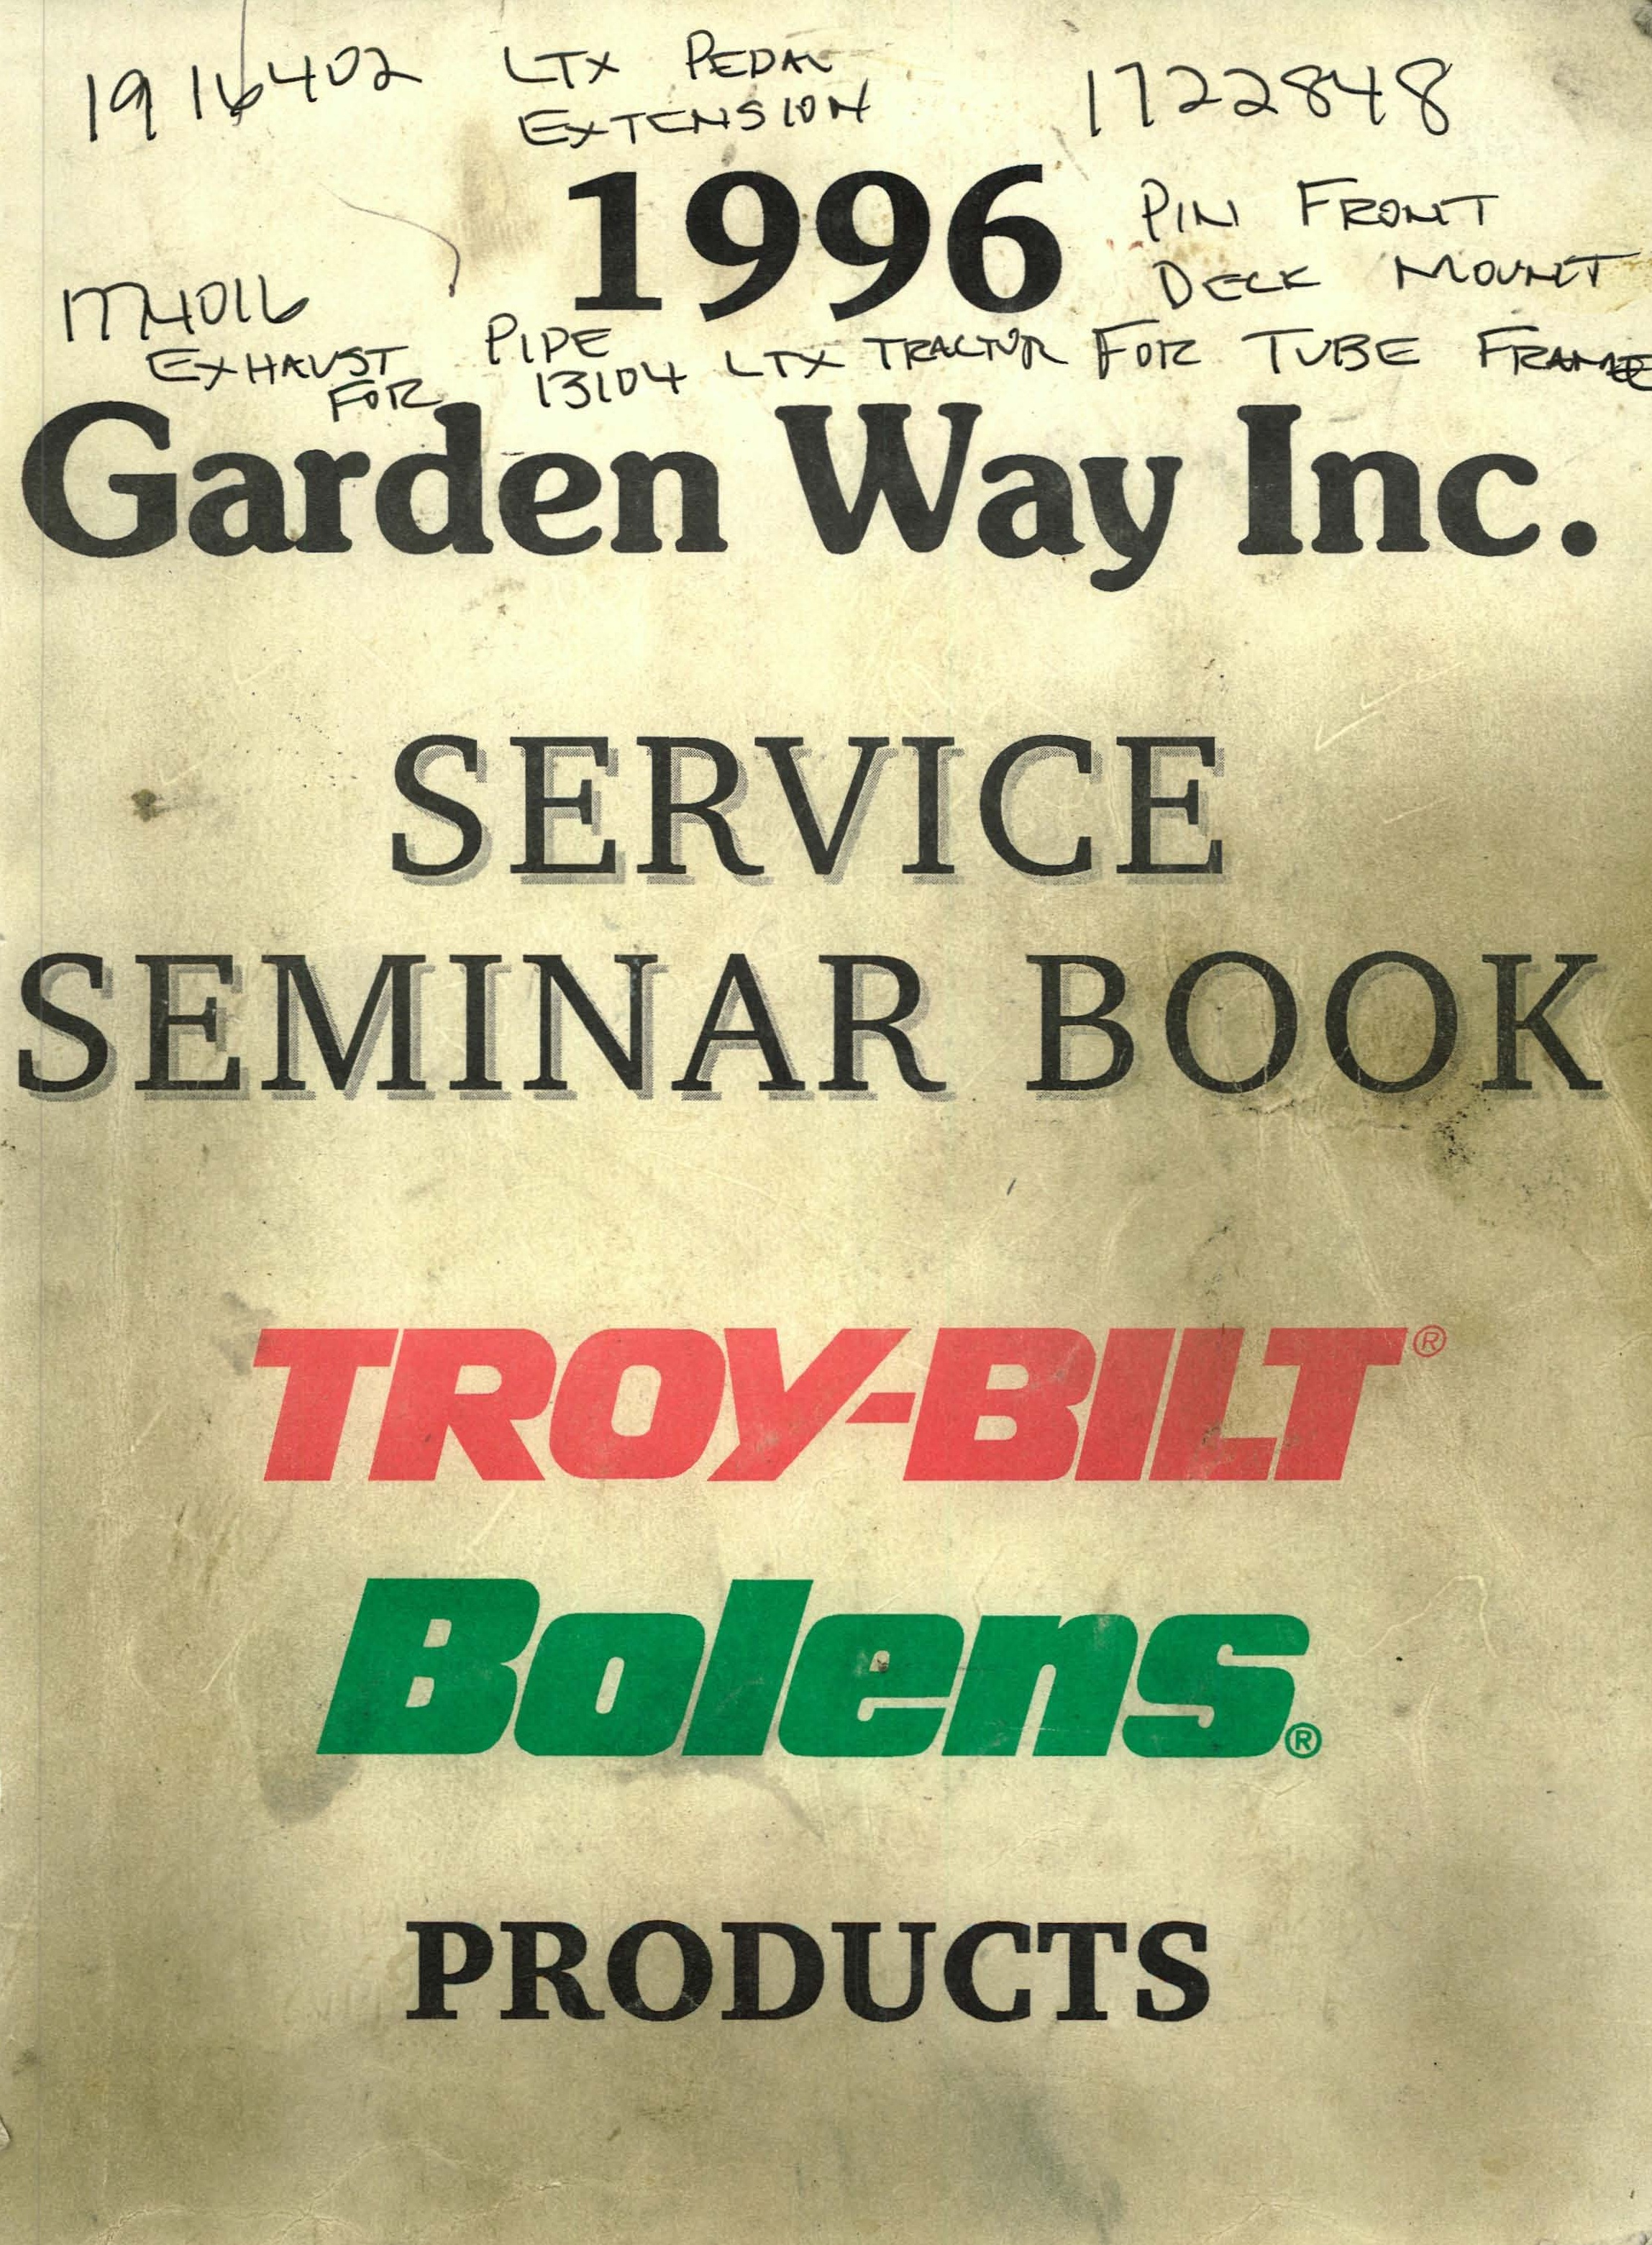 Lovely Miscellaneous Troy Bilt/Garden Way/Murray Owneru0027s Manuals,  Service Manuals And Parts